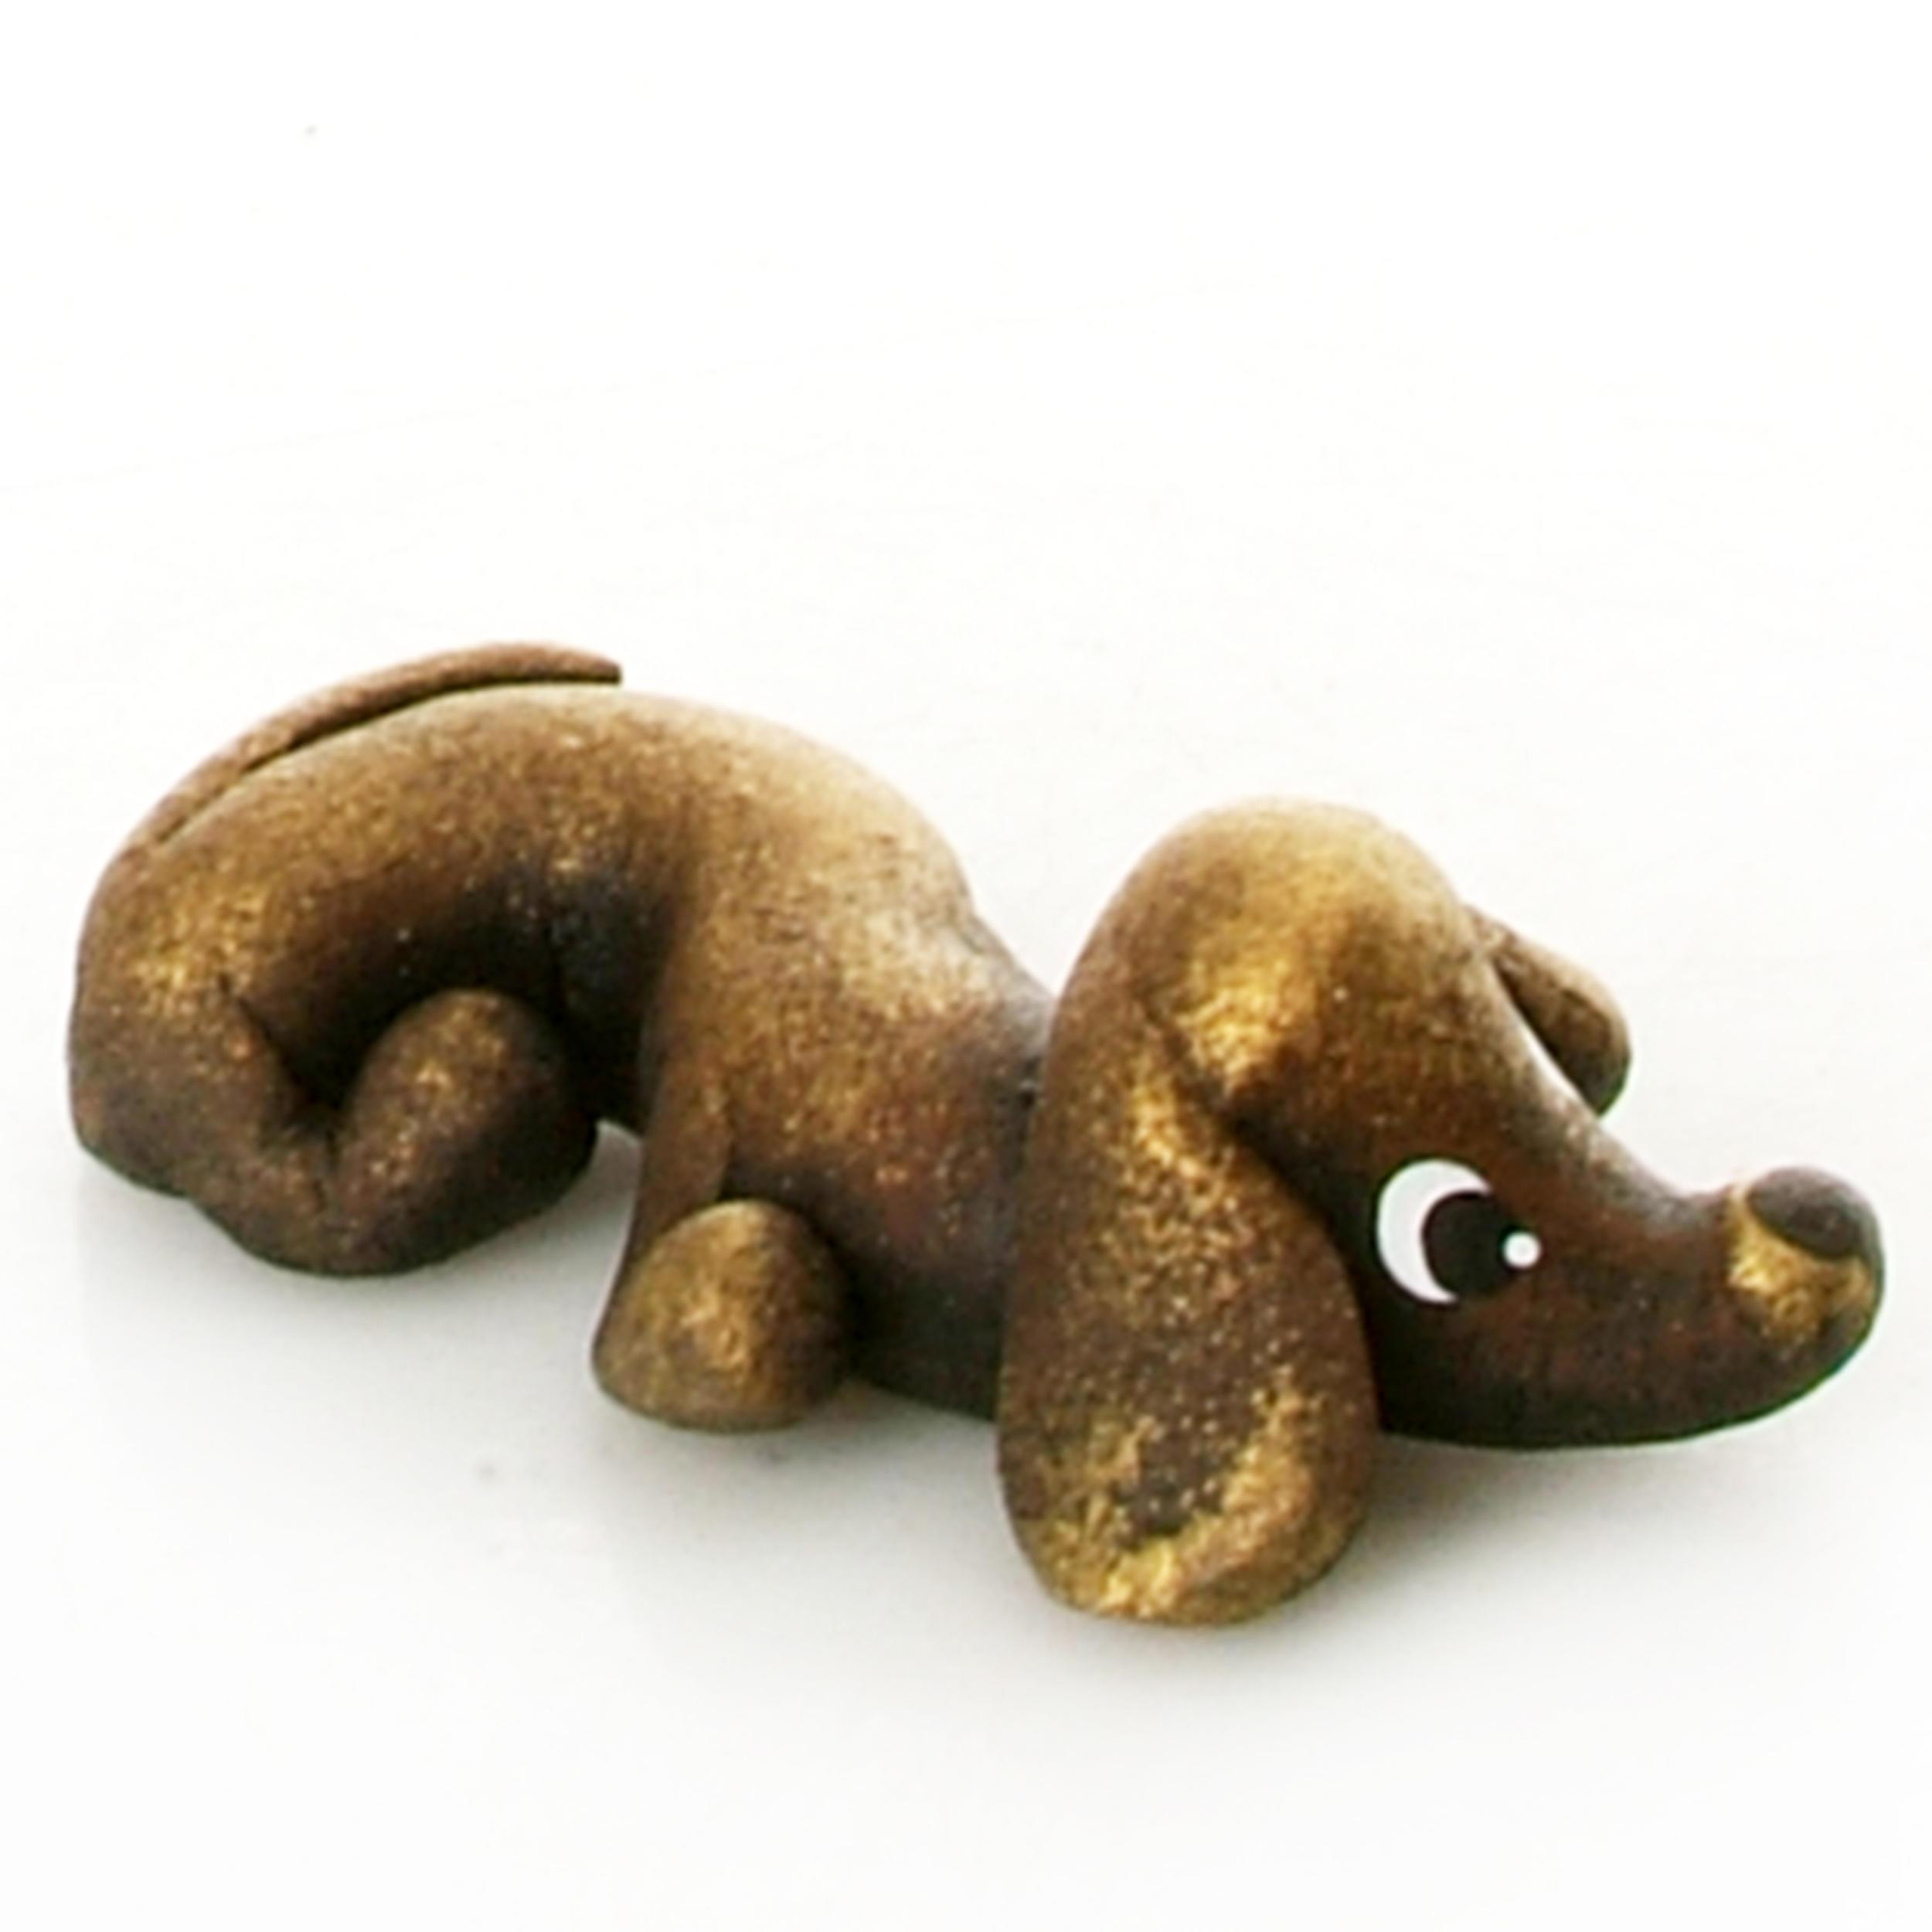 Pet in a Box | Ceramic Animal Gift for Kids | Brown Dachshound